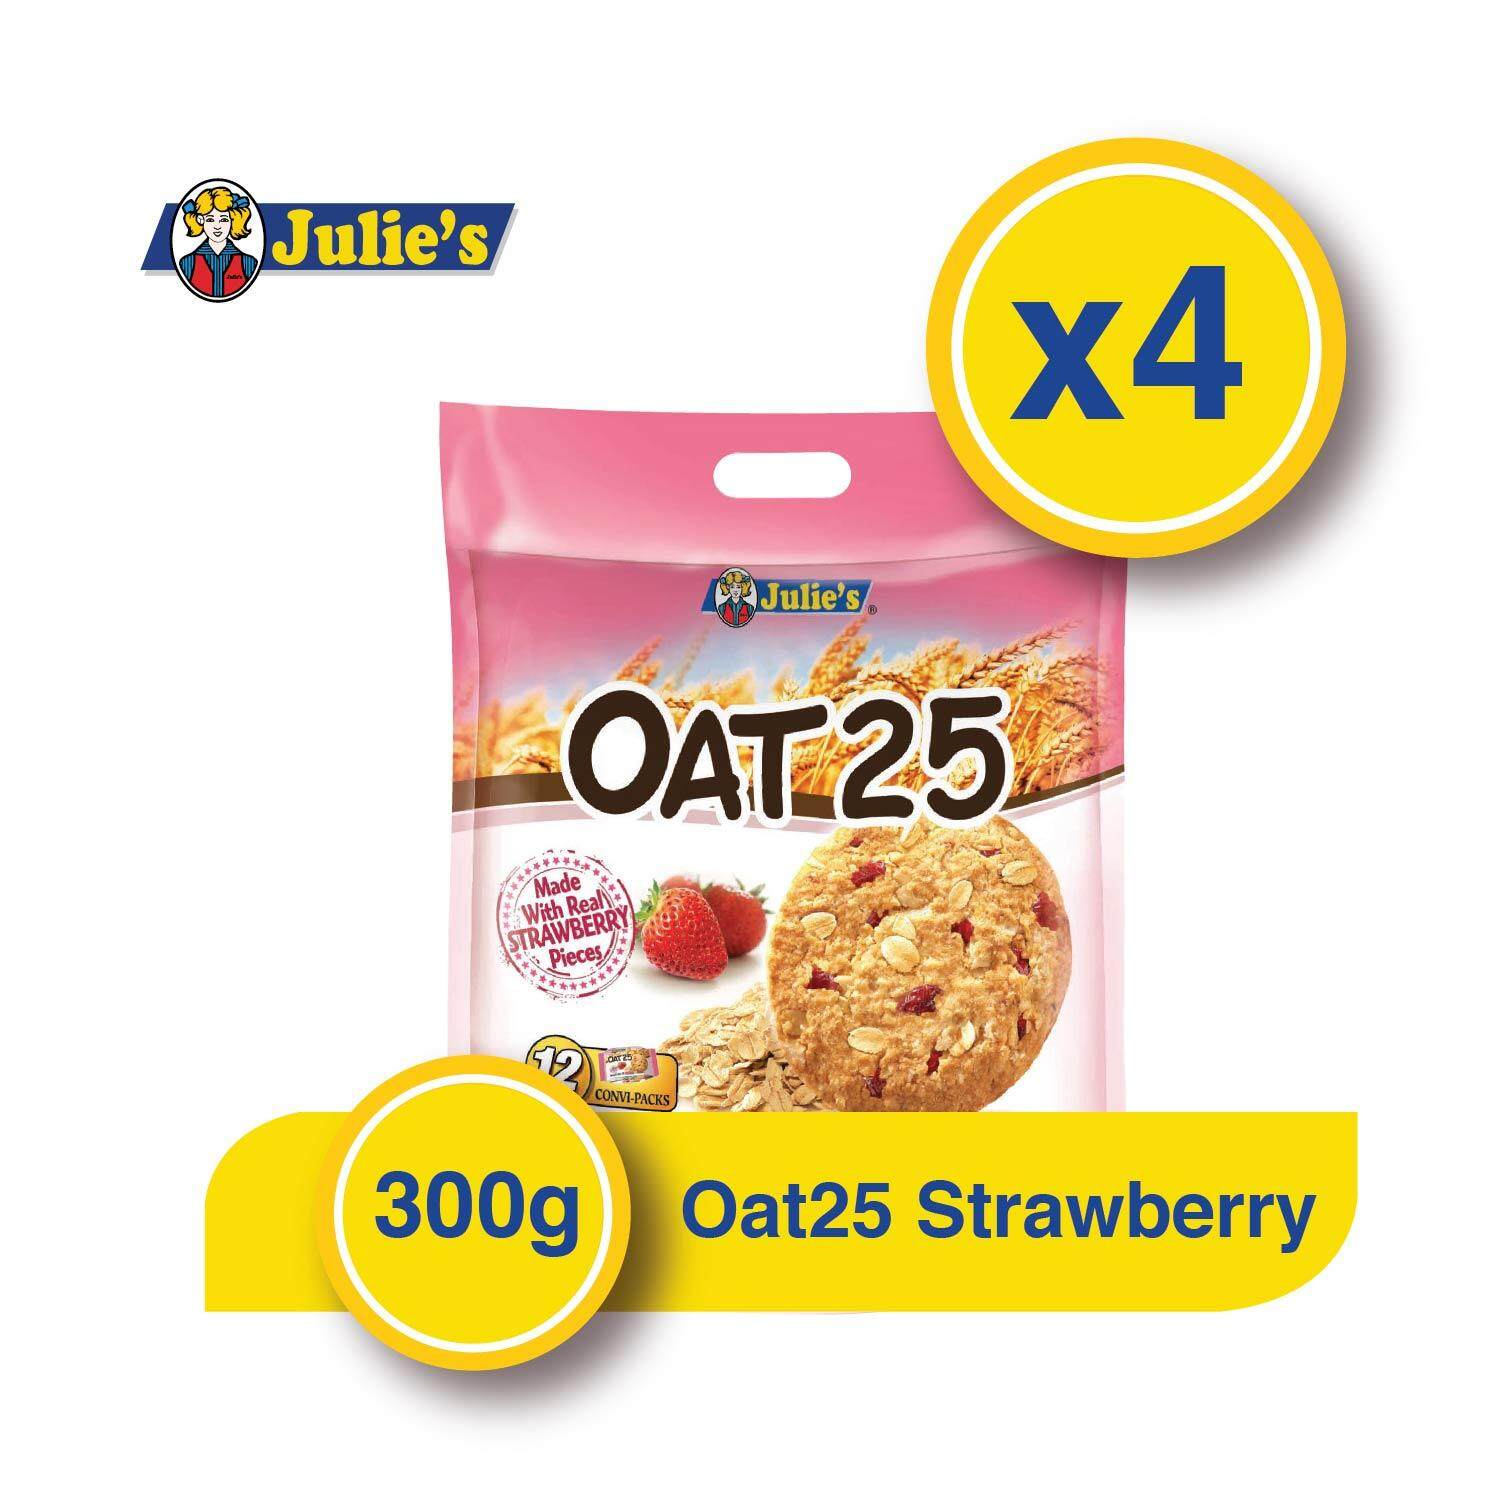 Julie's Oat25 Strawberry Biscuit x 4 packs + Free 5 pack Convi pack Biscuit